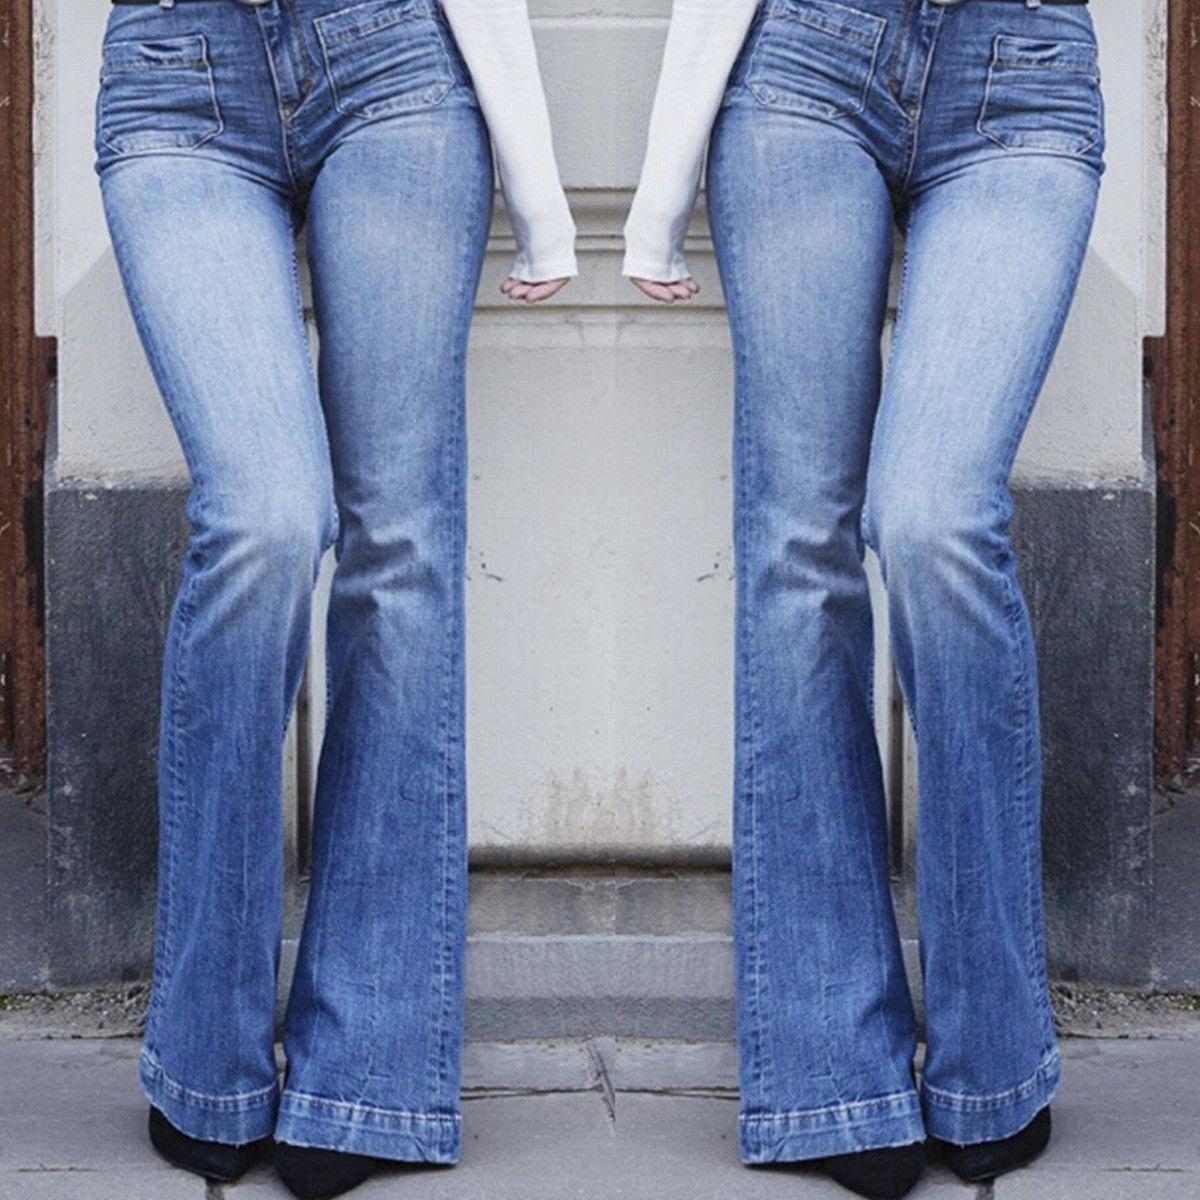 Women High Waist Jeans Flare Pants Fashion ladies Denim Fit Pocket Long Pants Spring  Autumn Trousers